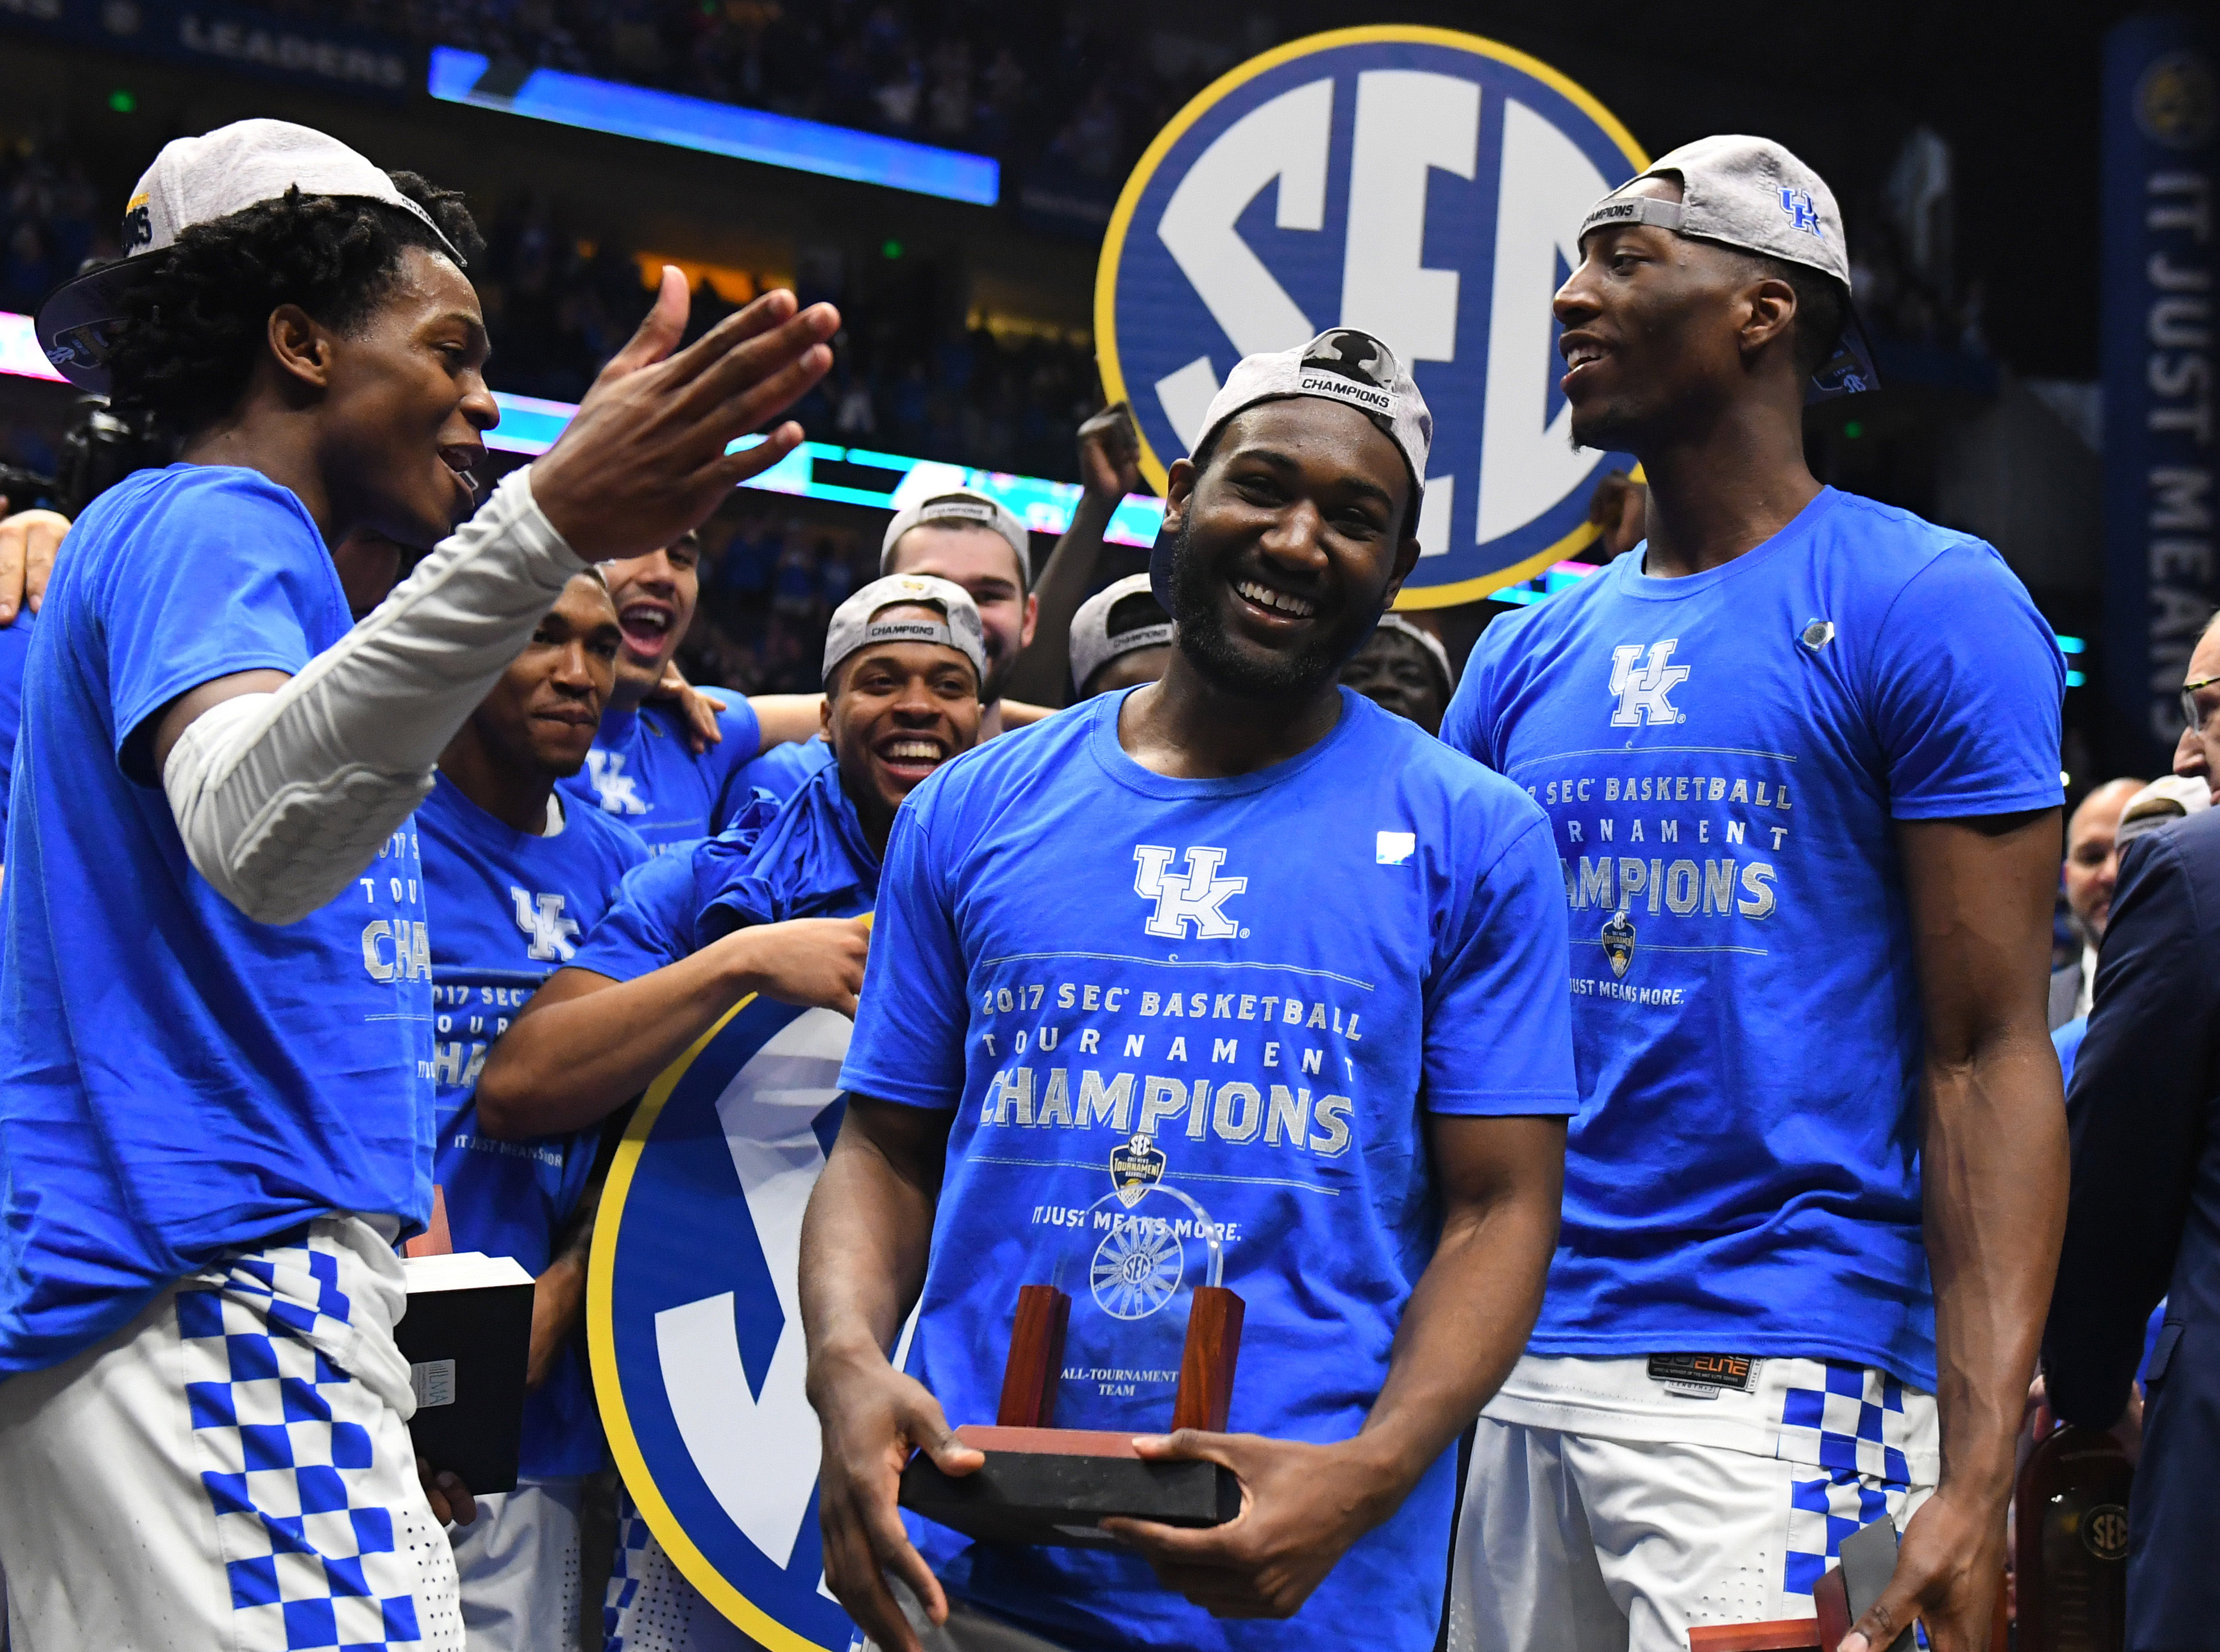 Kentucky Wildcats Basketball: March Madness: Three Things Kentucky Basketball Must Do To